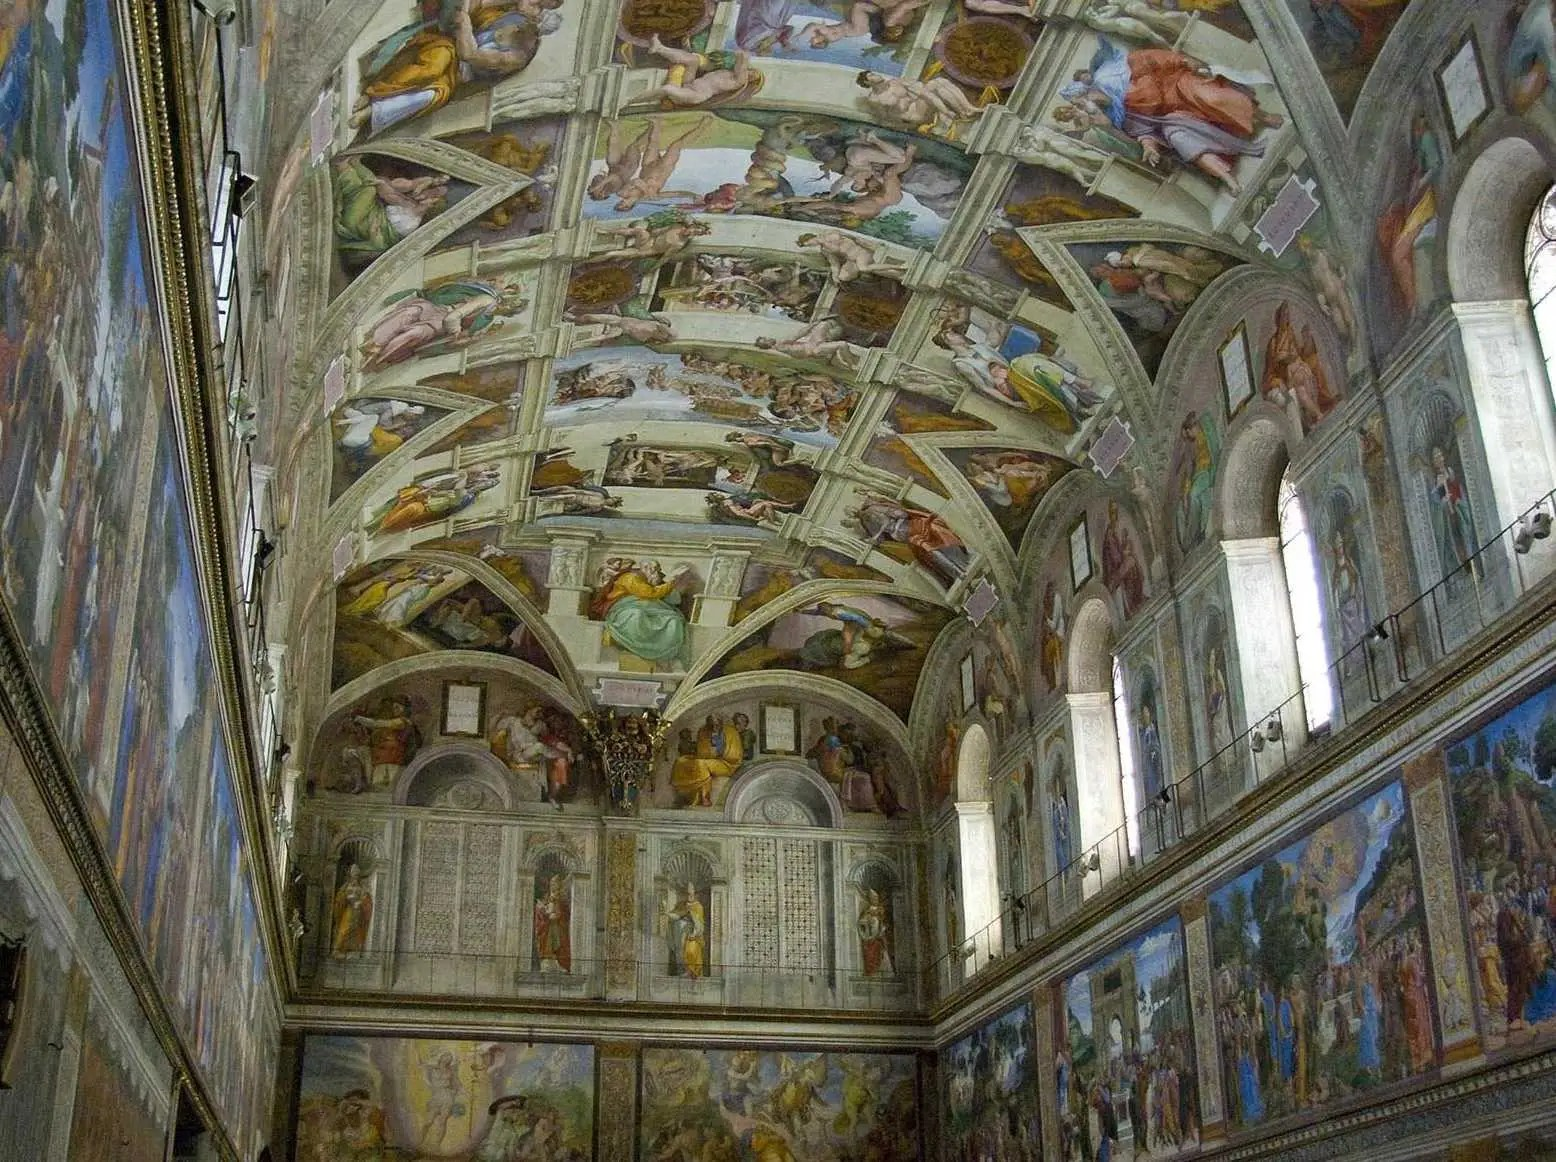 Gaze up at Michelangelo's Sistine Chapel ceiling. Although it's technically in Vatican City, any trip to Rome wouldn't be complete without seeing this esteemed artwork.